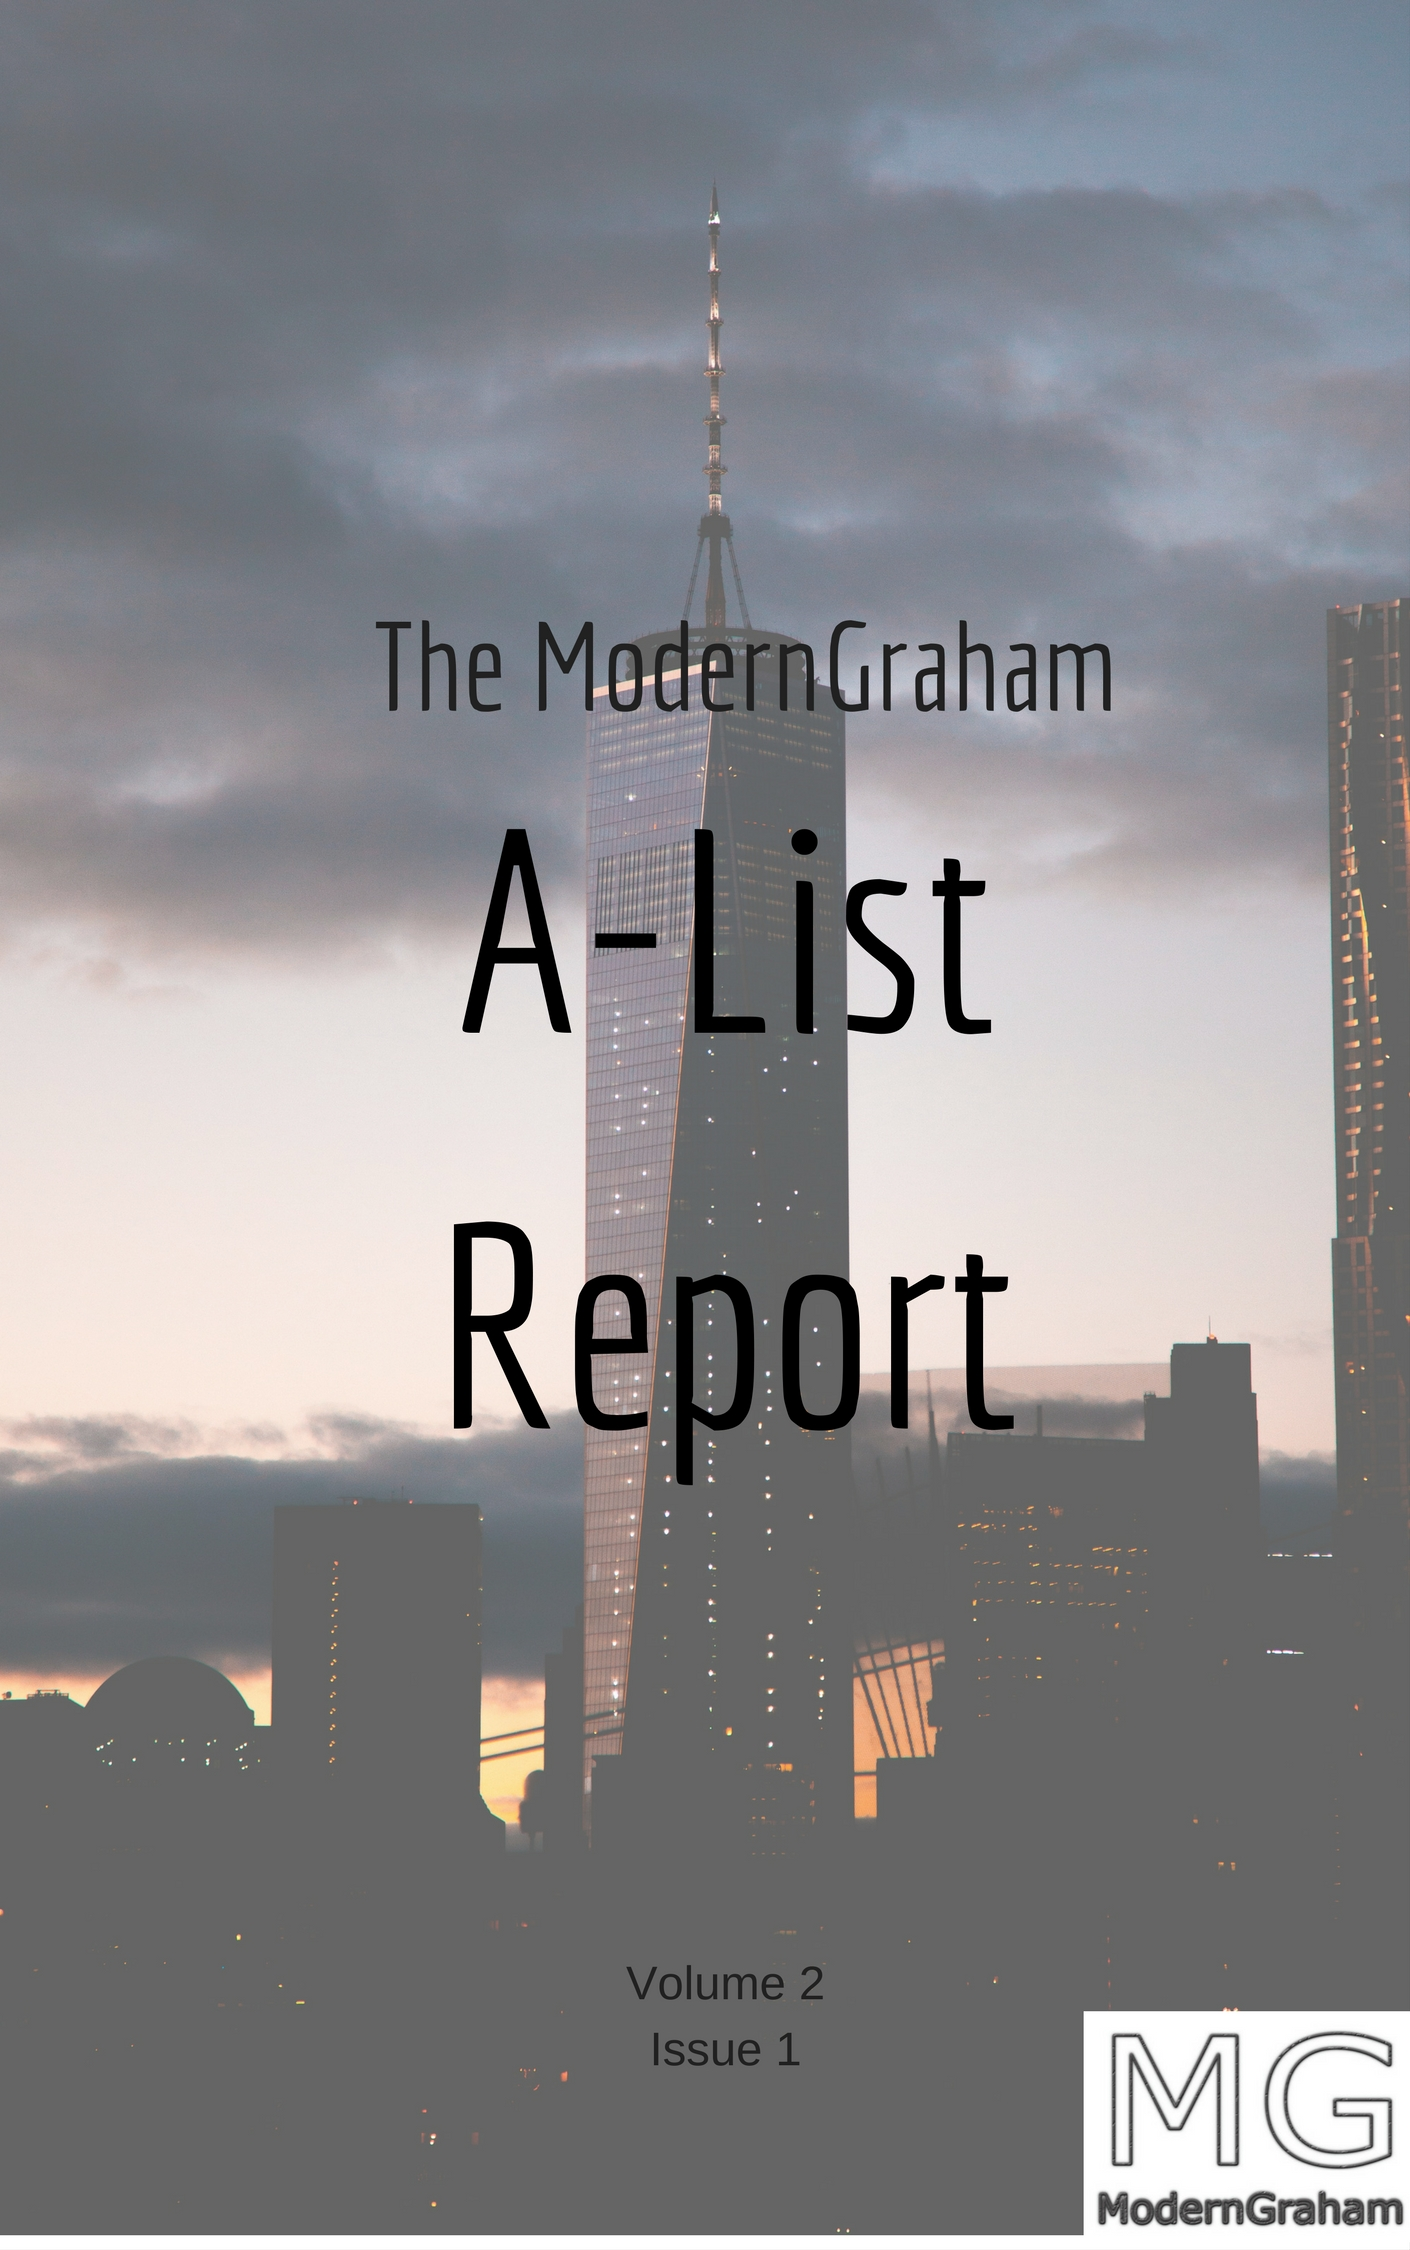 The Winter 2017 Issue of the A-List Report